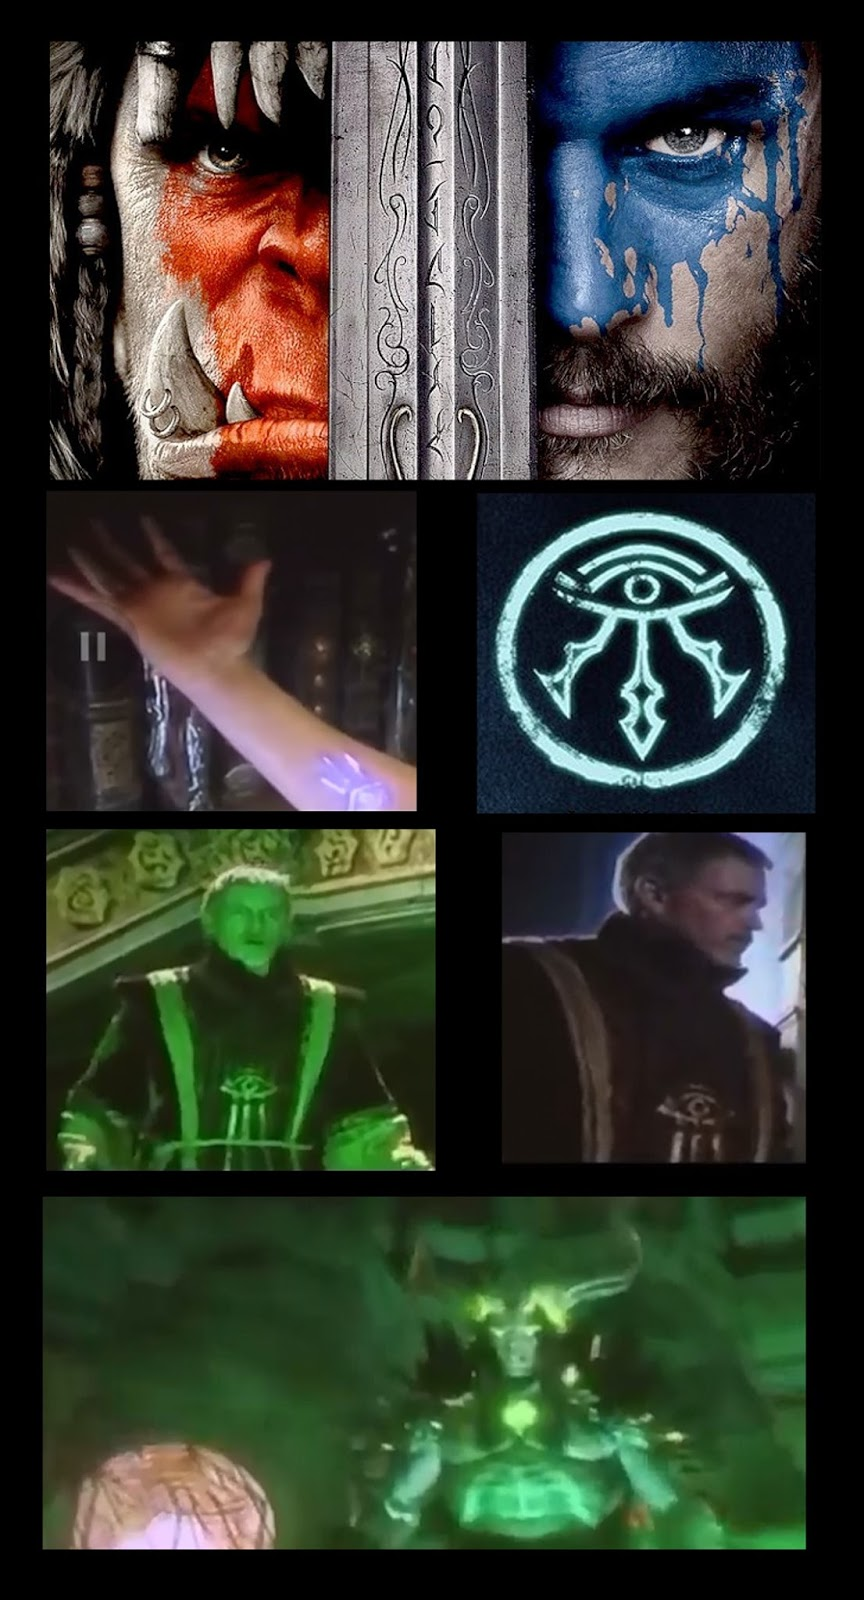 One All Seeing Eye Symbolism In Warcraft Movie True Freethinker